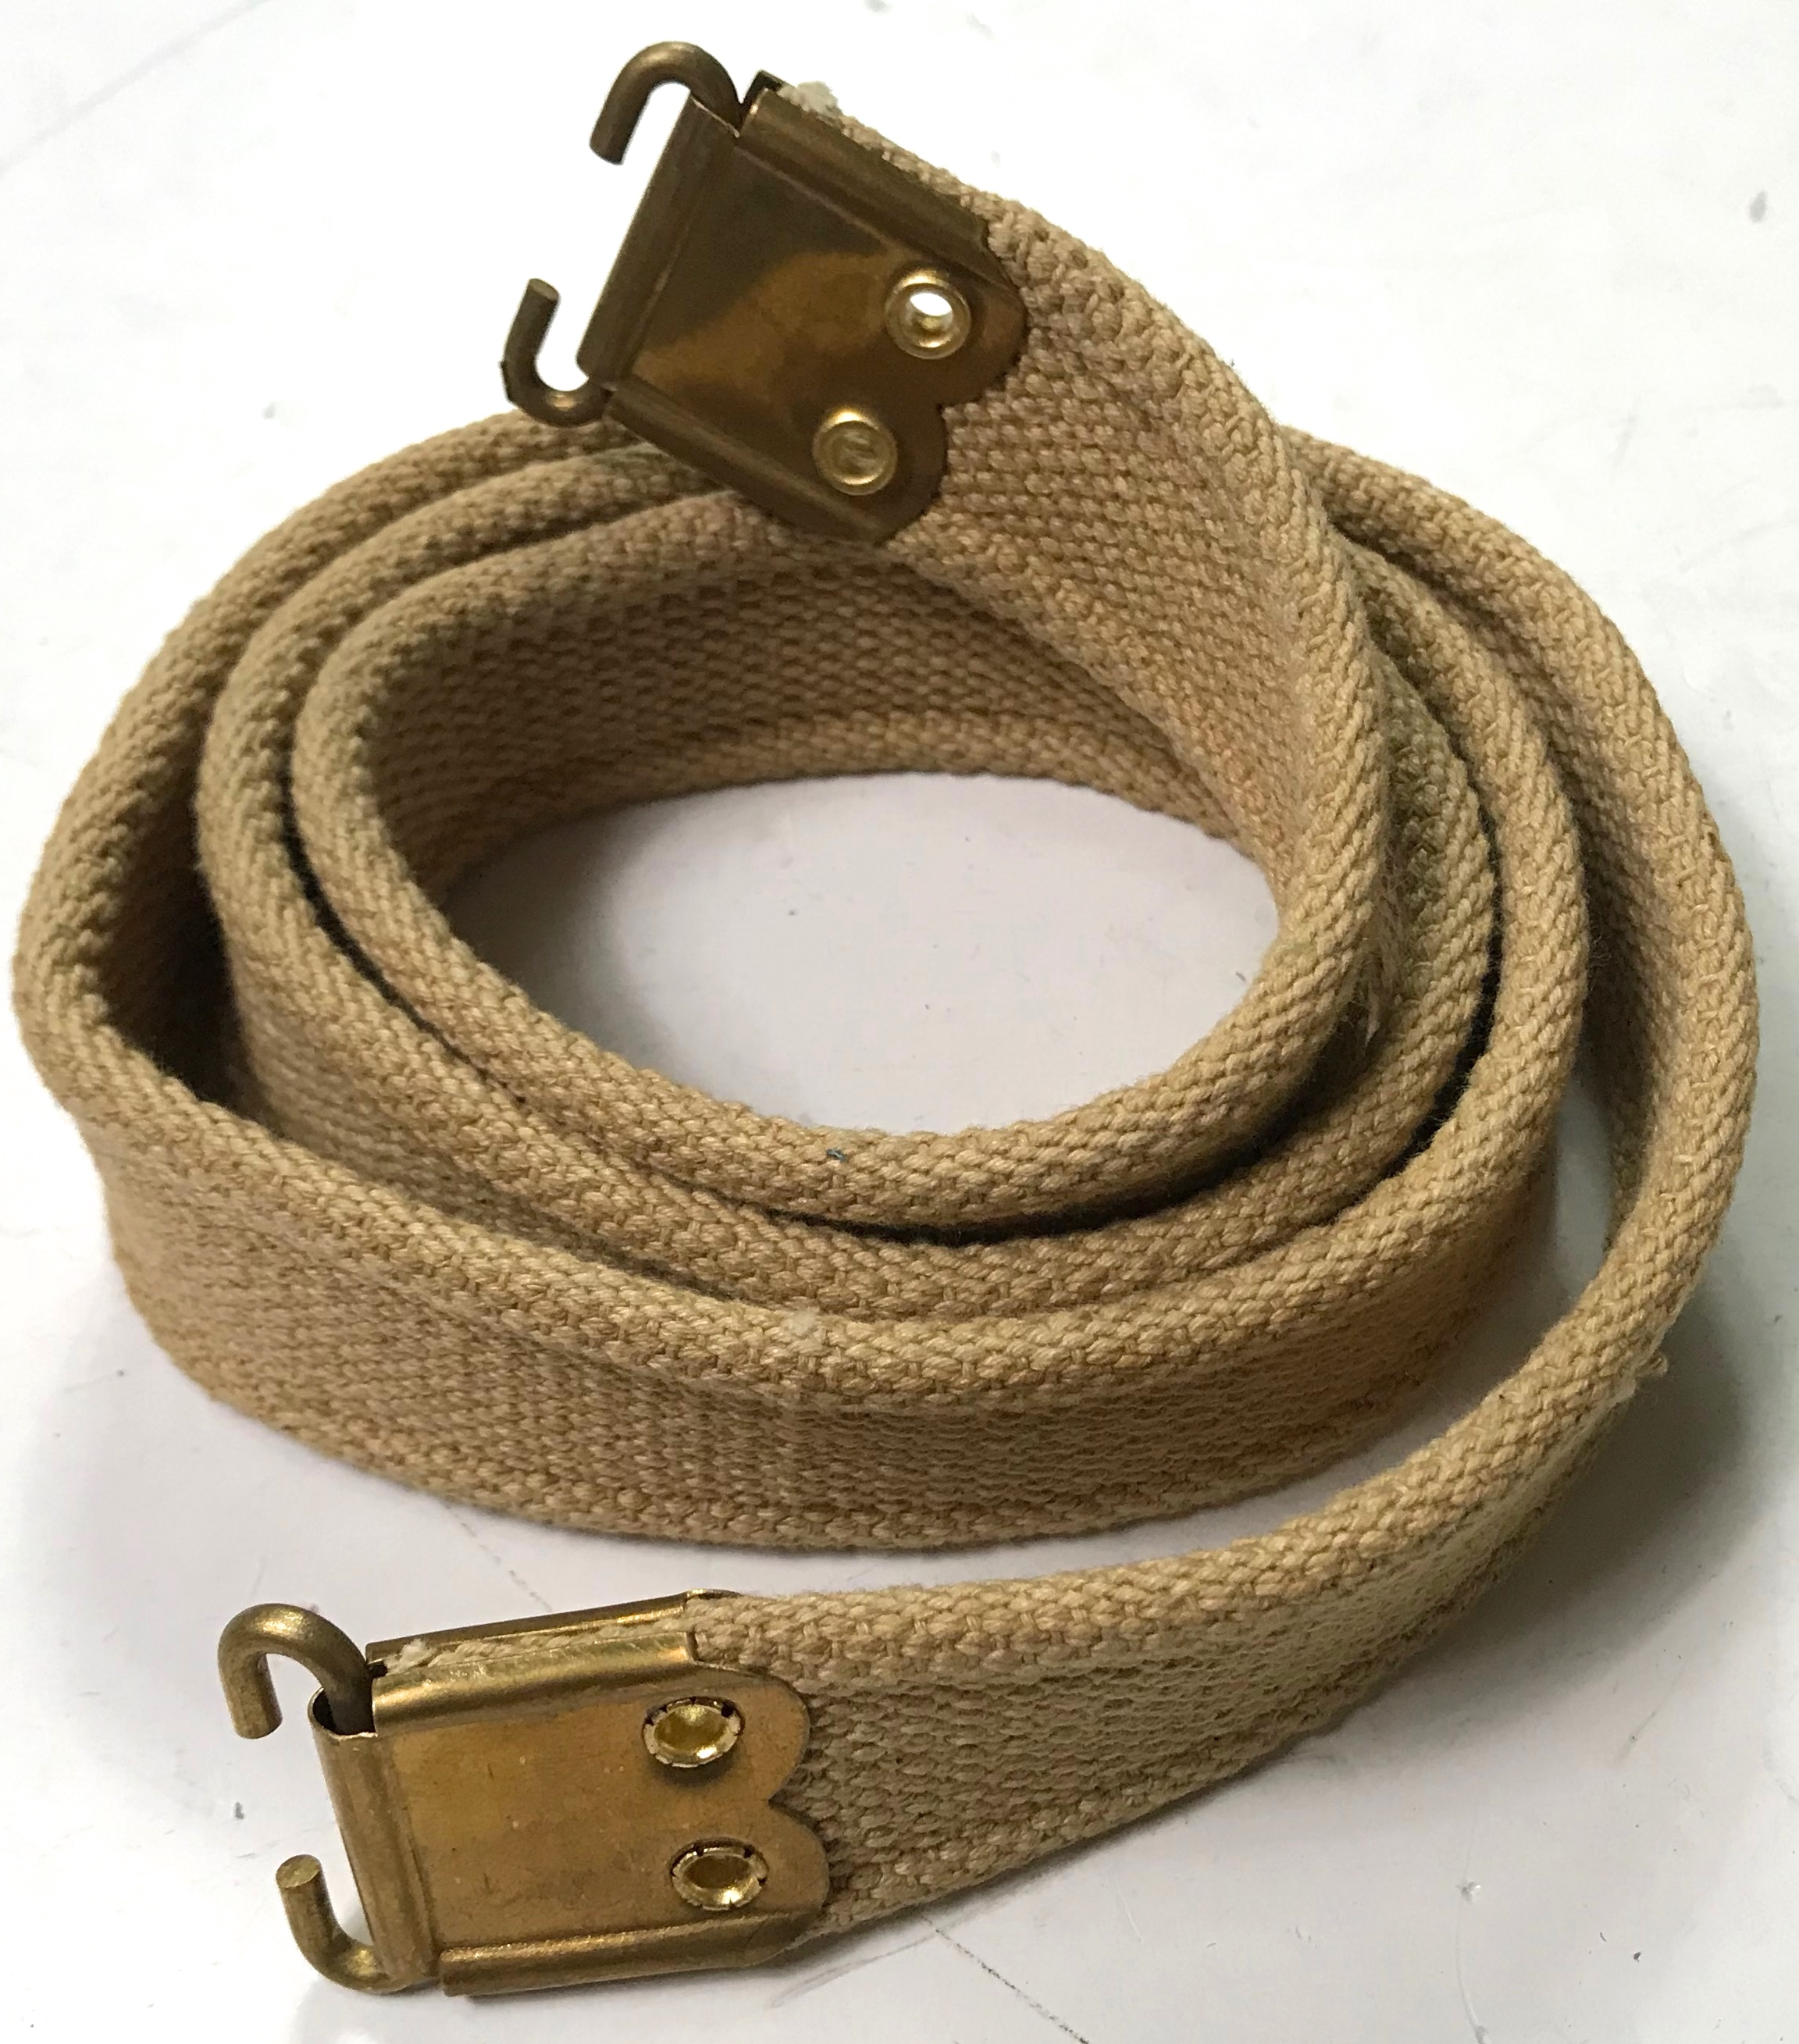 ENFIELD SMLE RIFLE CARRY SLING-CANVAS